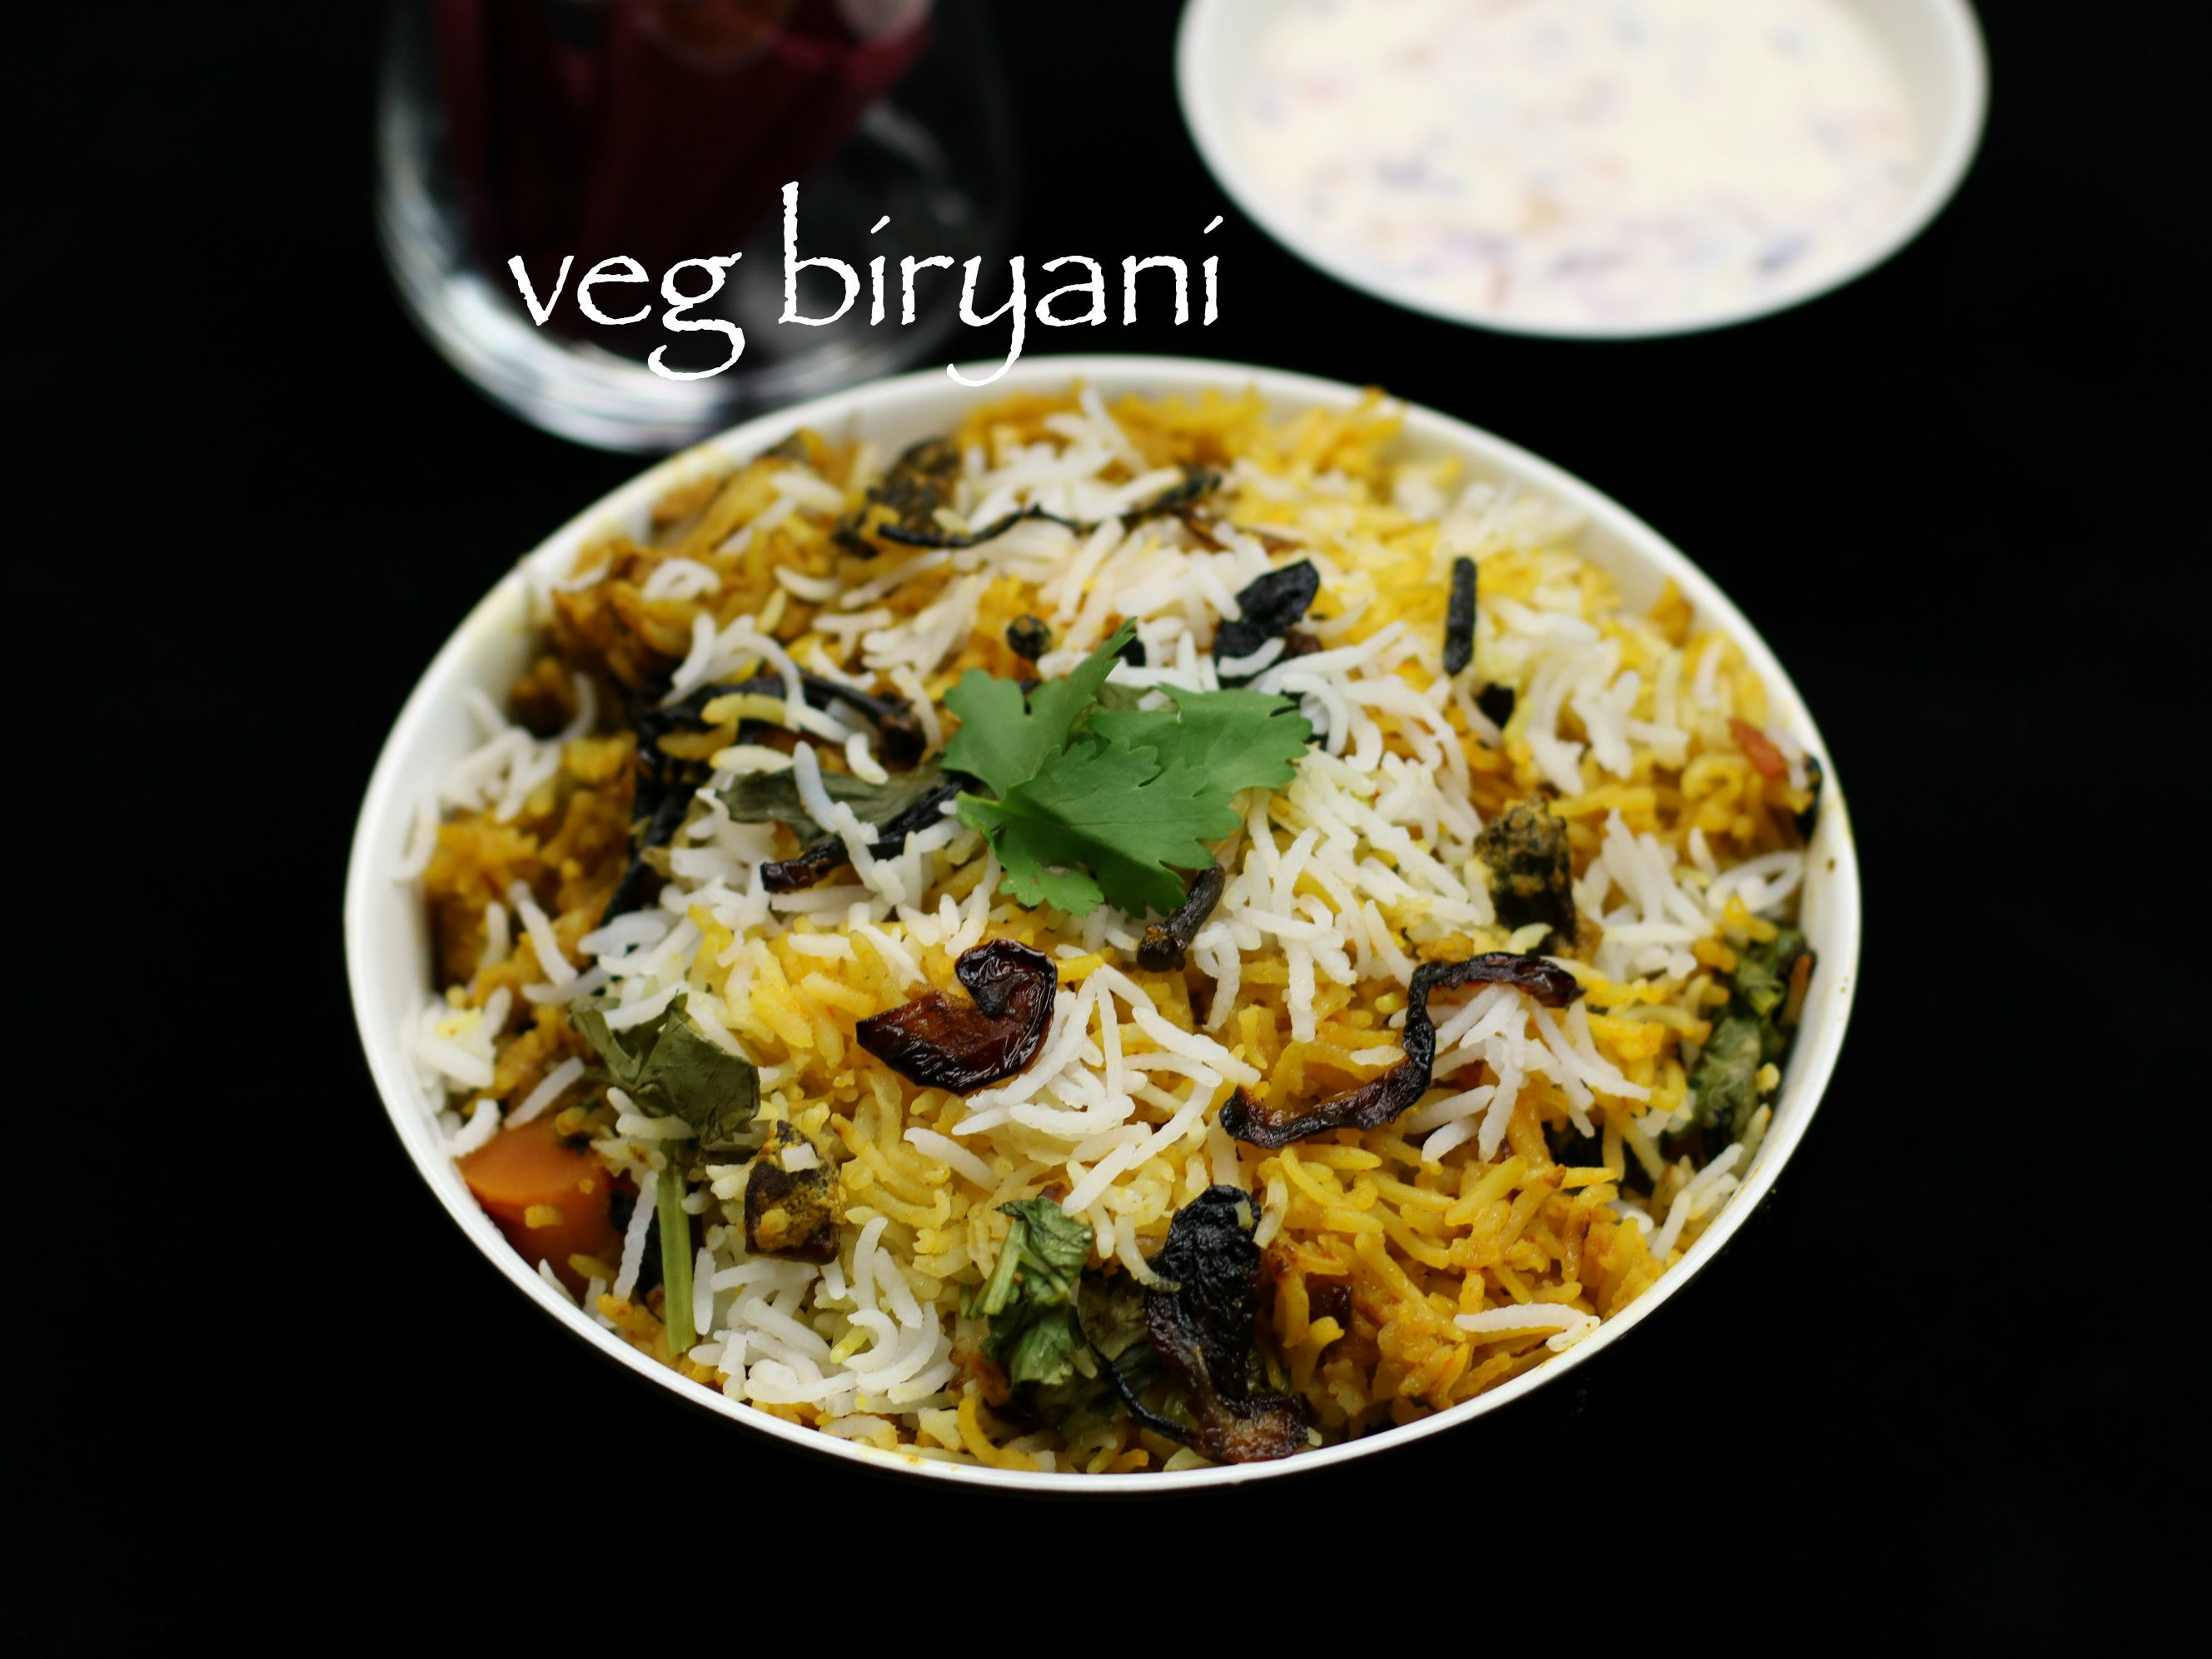 Hyderabadi vegetable biryani recipe veg biryani recipe learn how hyderabadi vegetable biryani recipe veg biryani recipe learn how to make veg biryani in forumfinder Choice Image